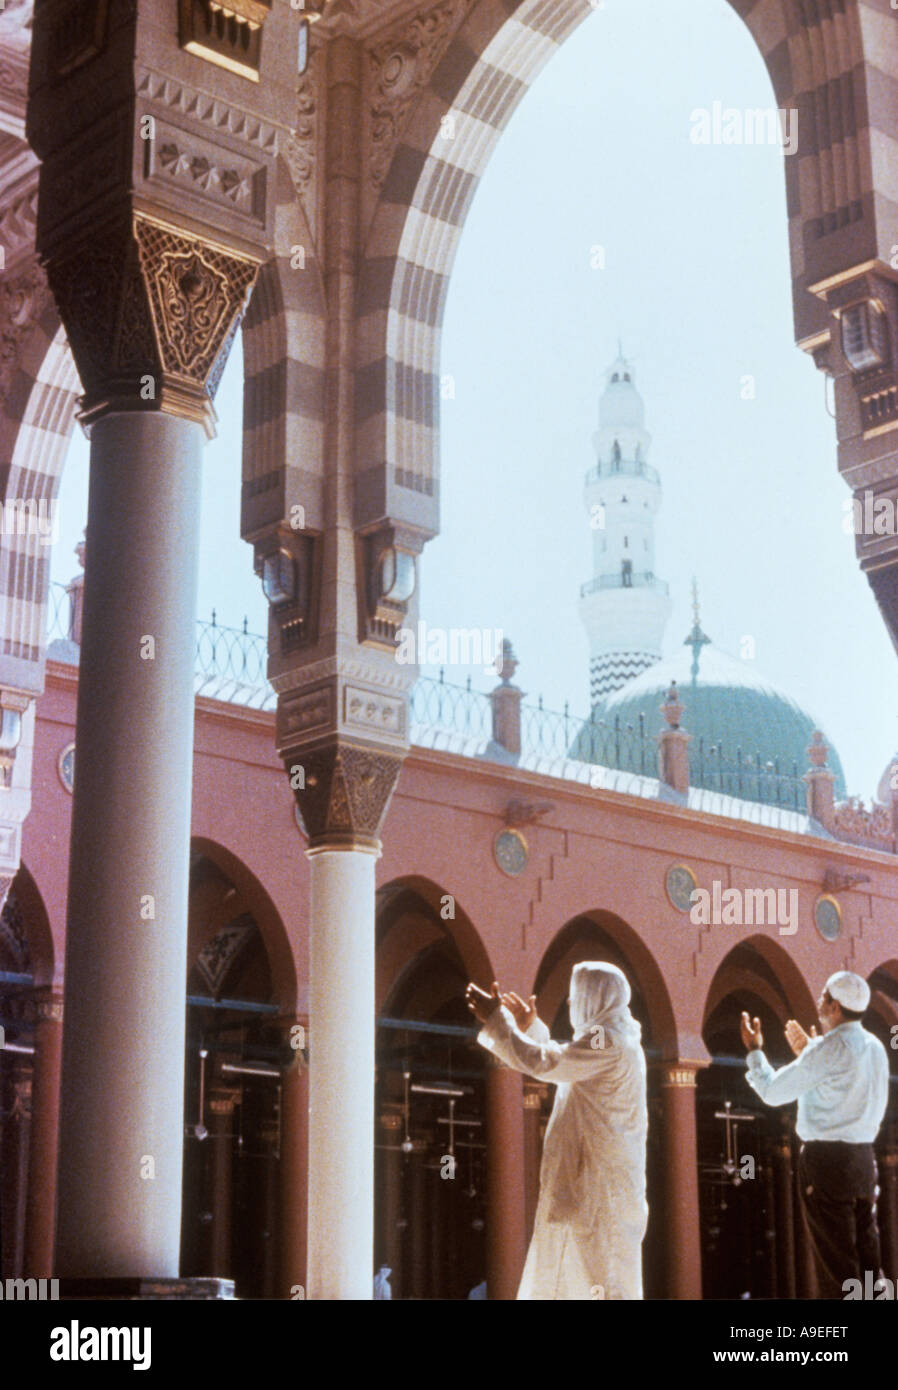 Saudi Arabia, Mecca.  A Muslim raises his hands in prayer in the Mosque. Mecca & Medina are two of the holiest - Stock Image